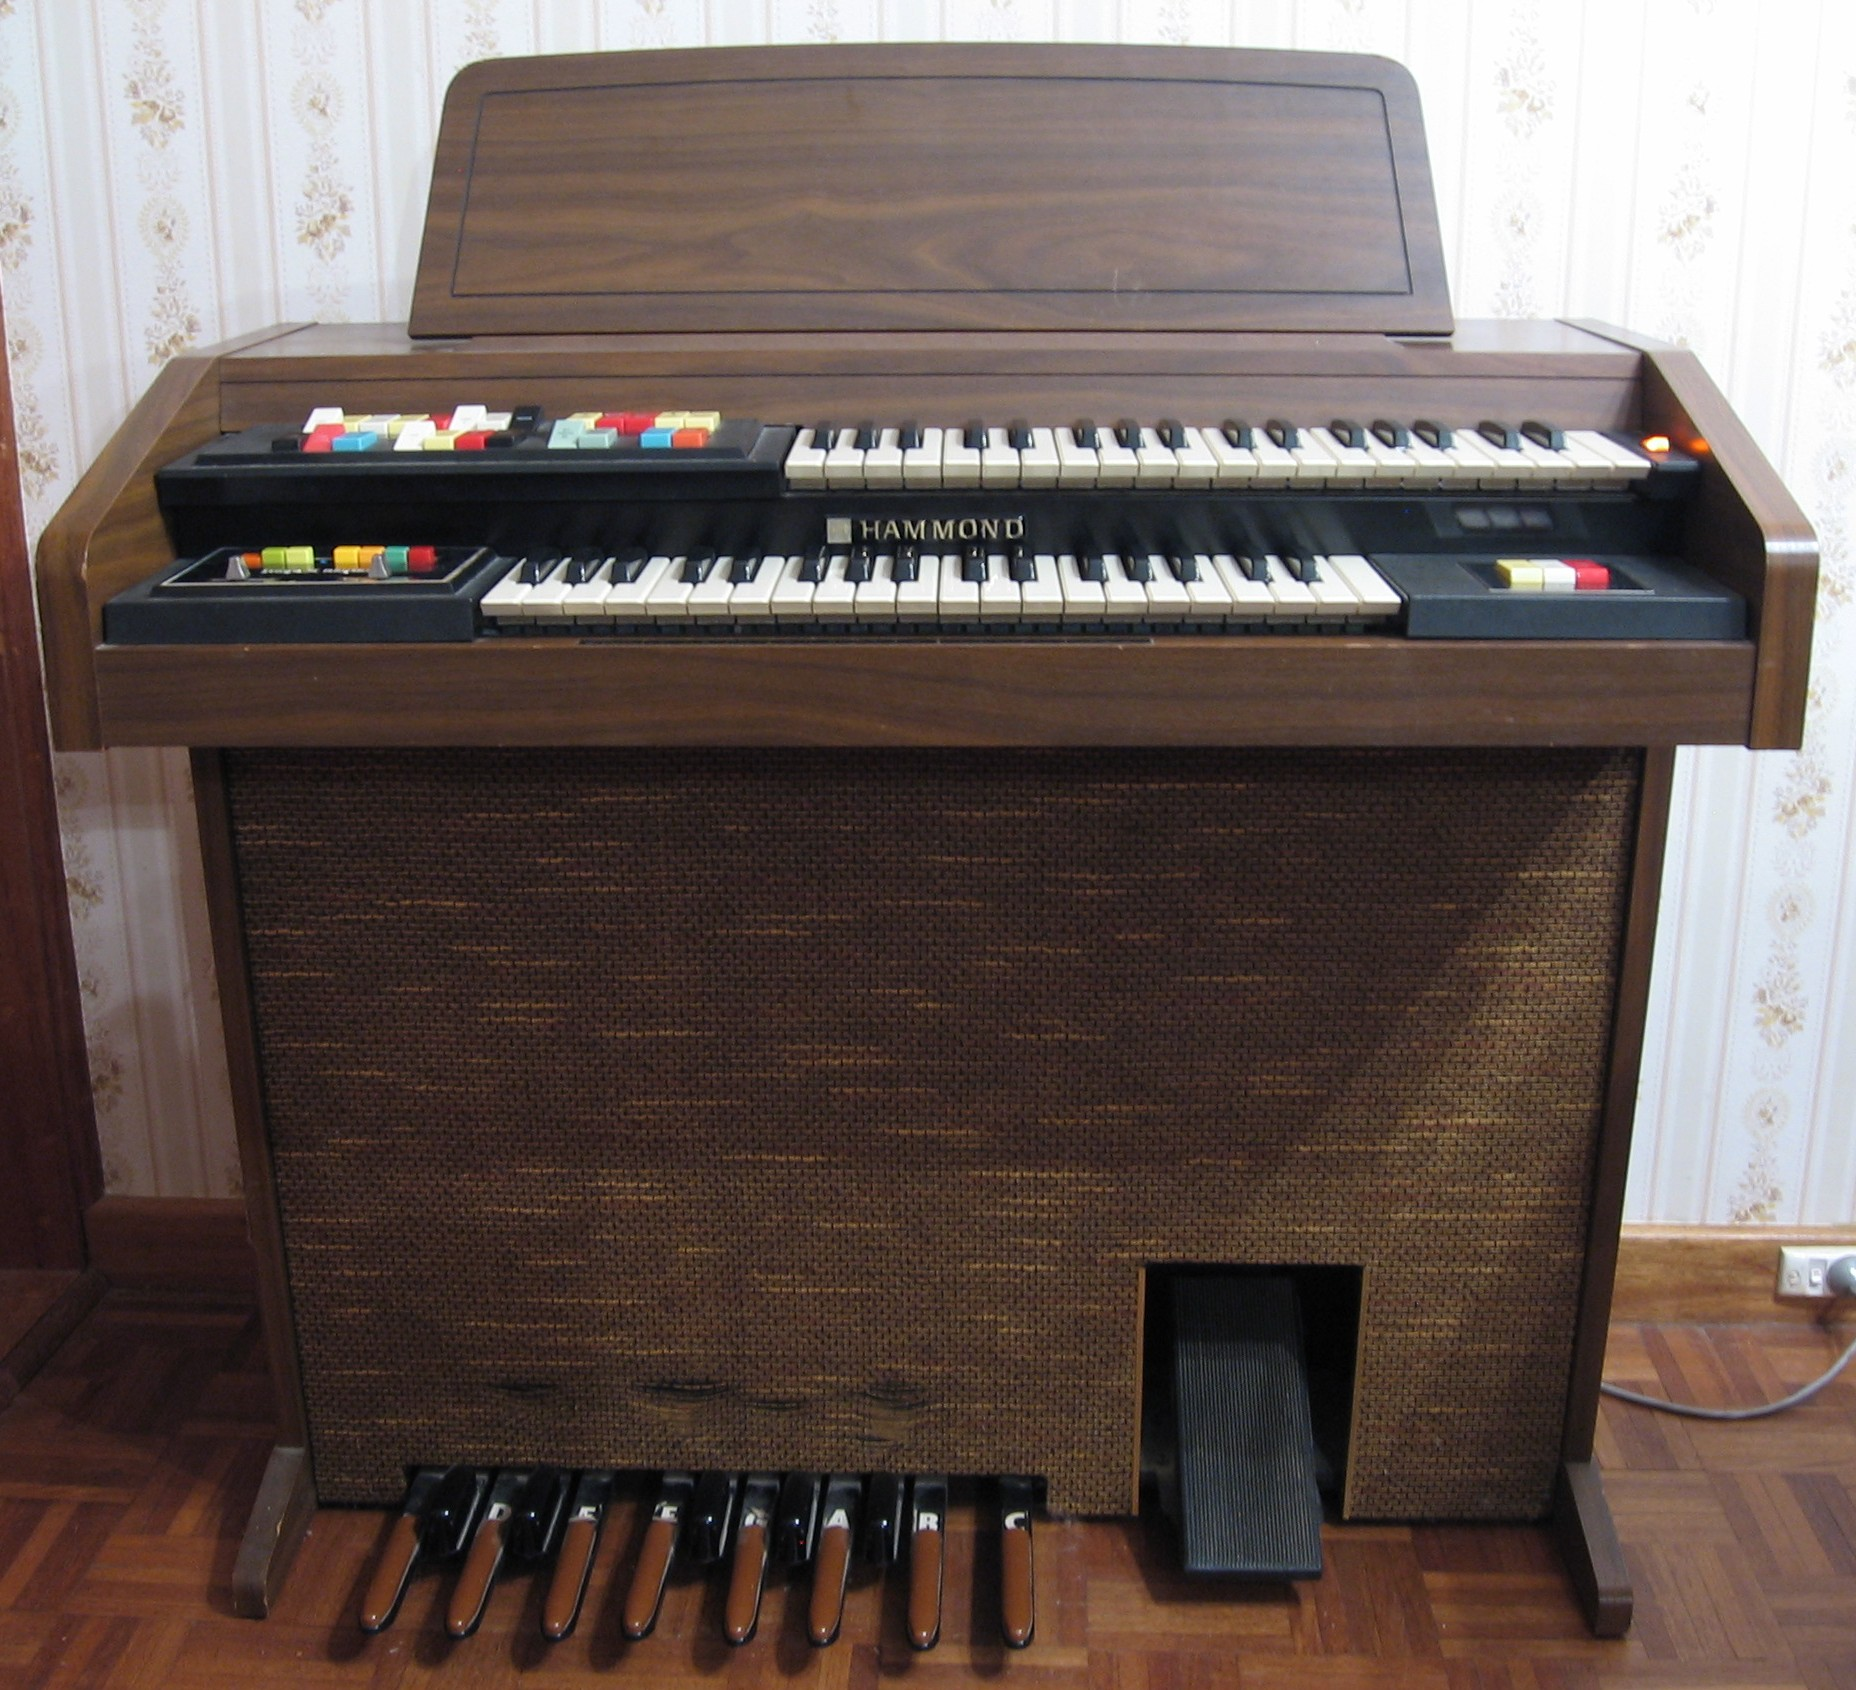 Hammond 123J3 organ review